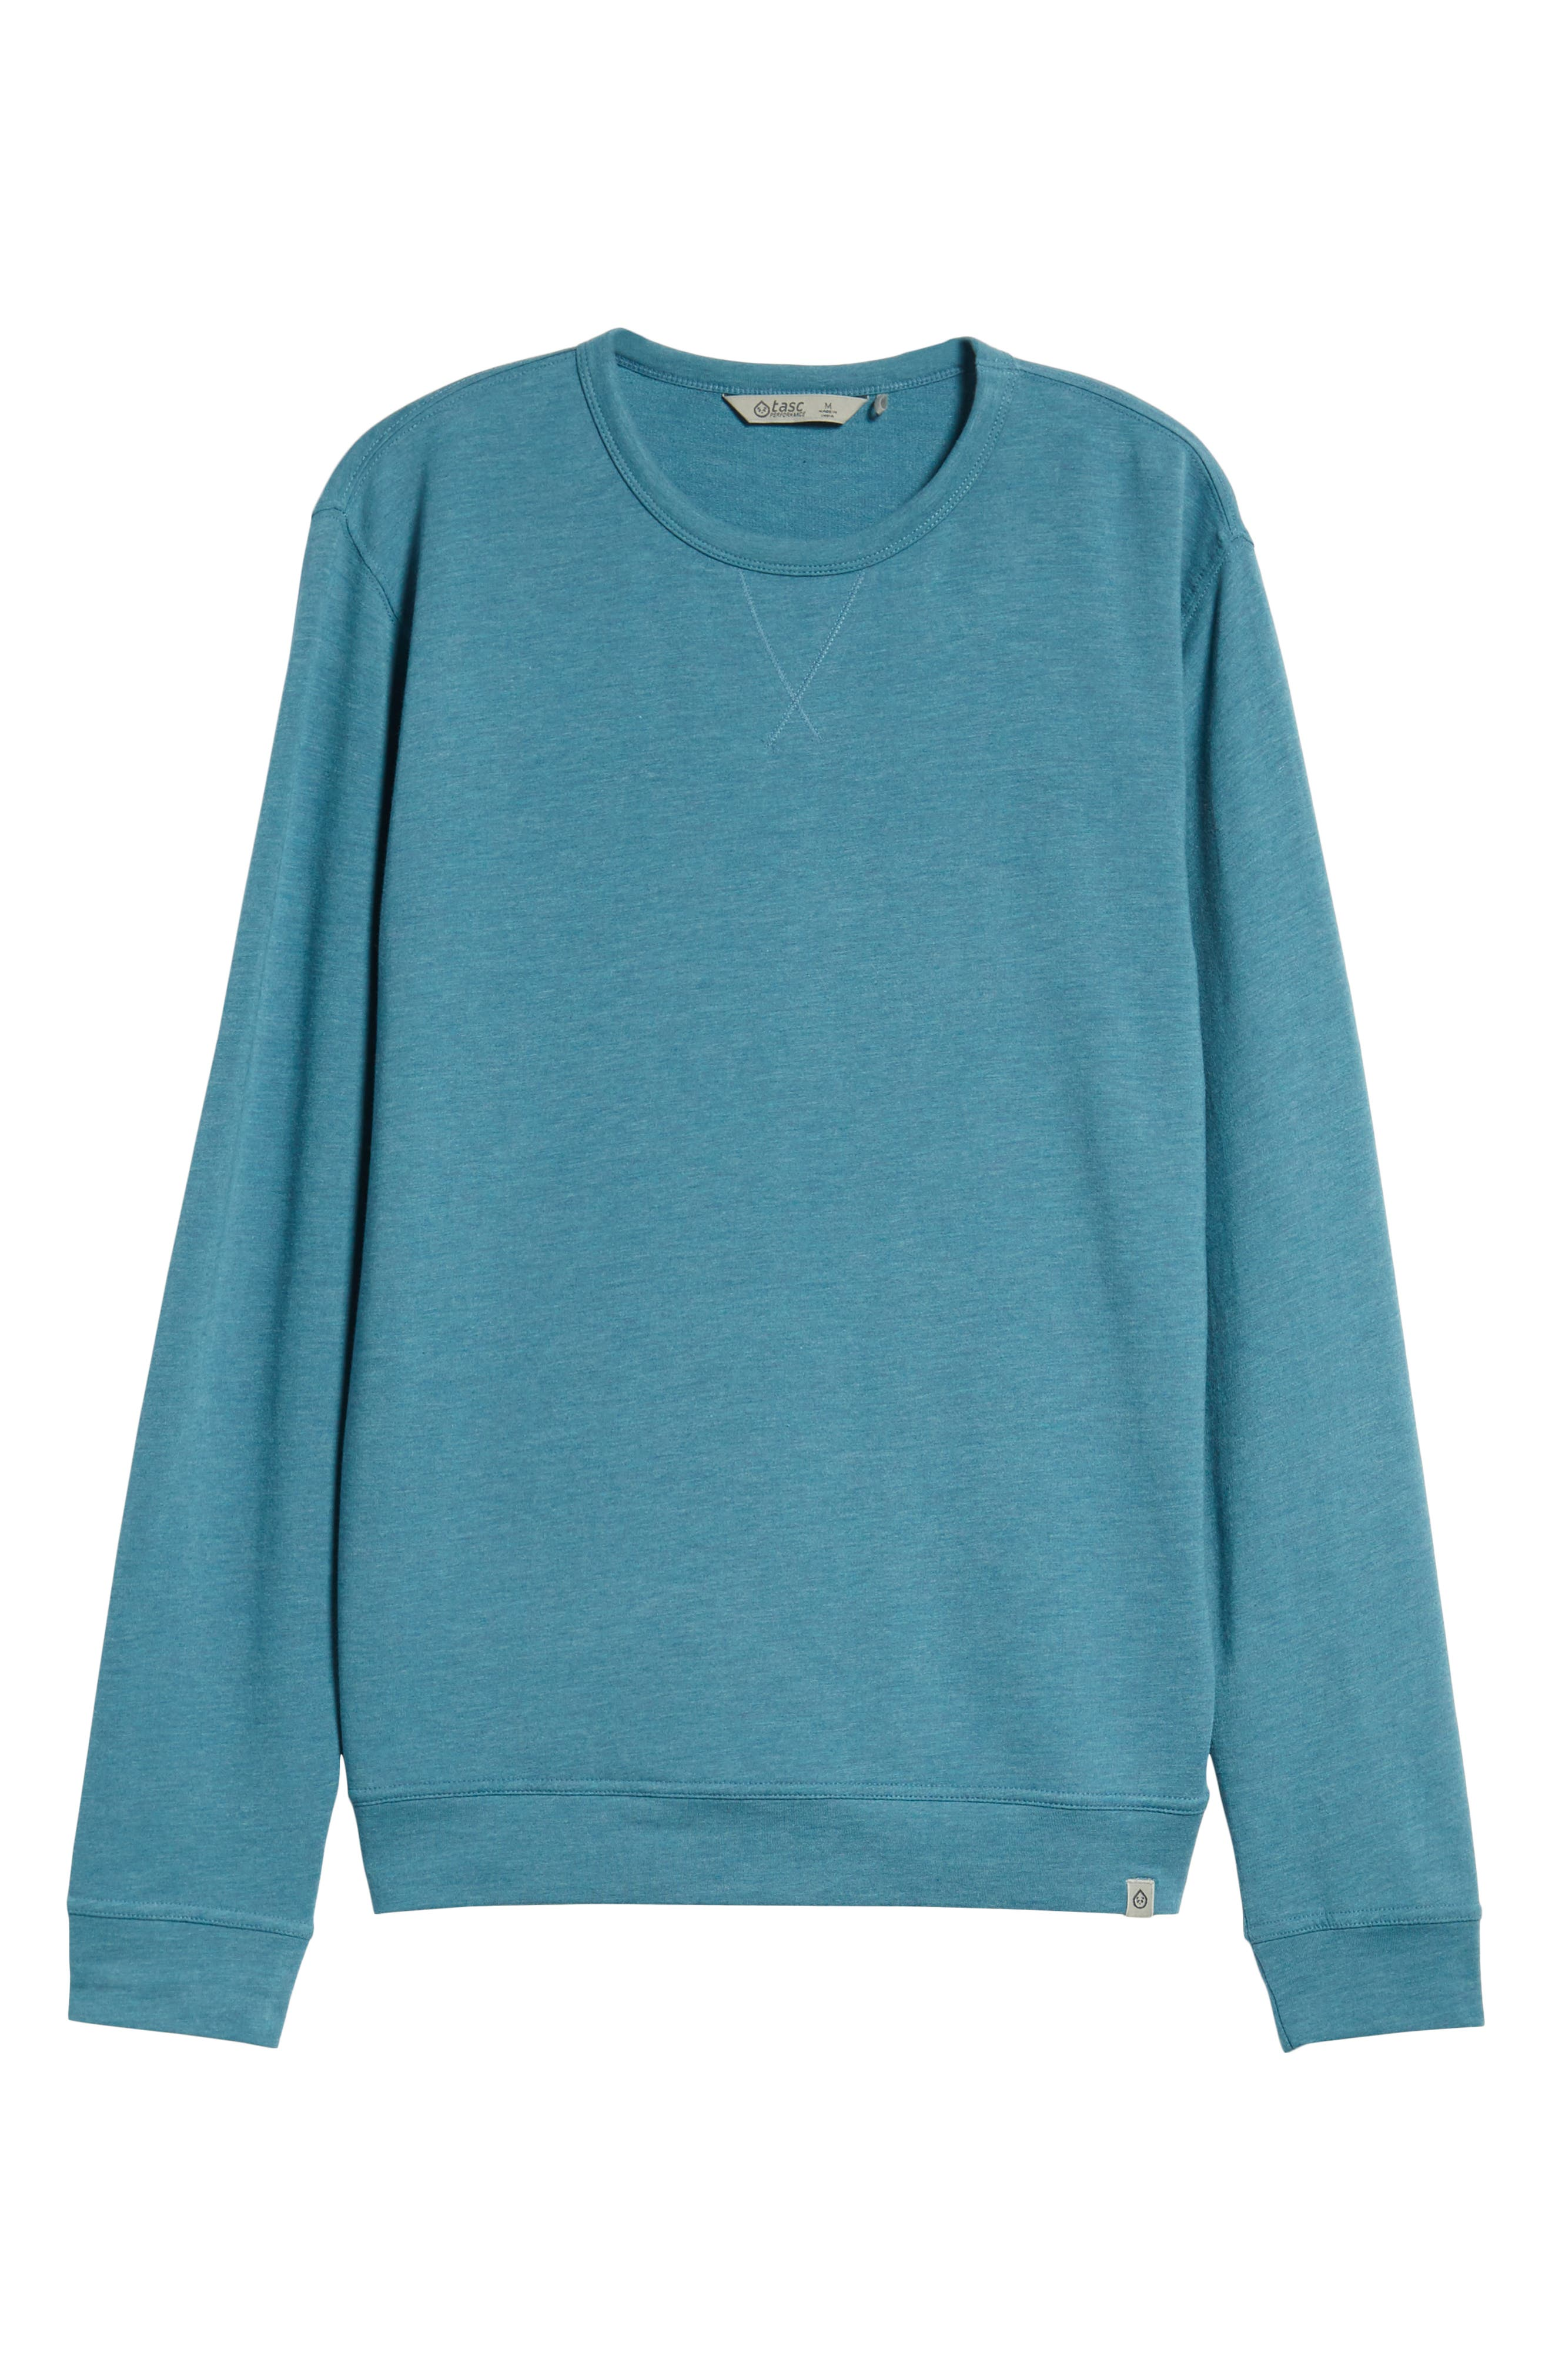 TASC PERFORMANCE, Charge II T-Shirt, Alternate thumbnail 7, color, TRANQUILITY SEA HEATHER